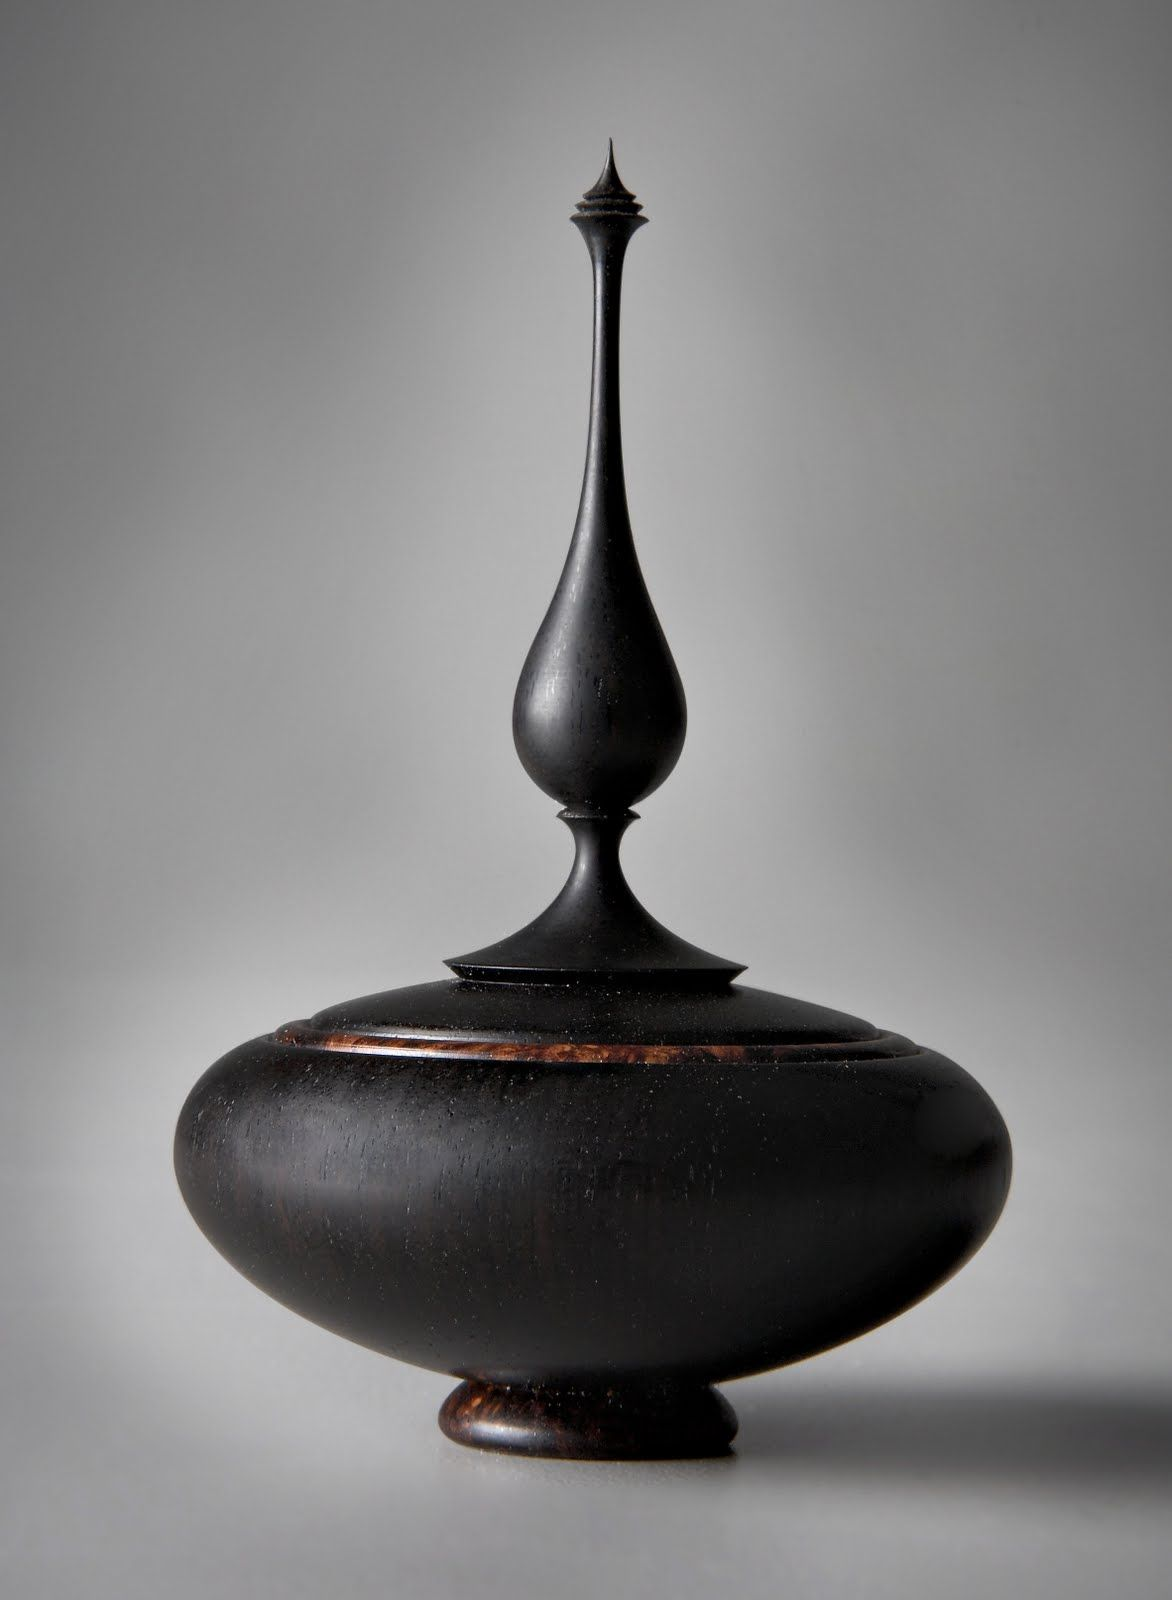 Cindy Drozda - The Fine Art of Woodturning: My brand new Presentation for the AAW Symposium in Hartford!